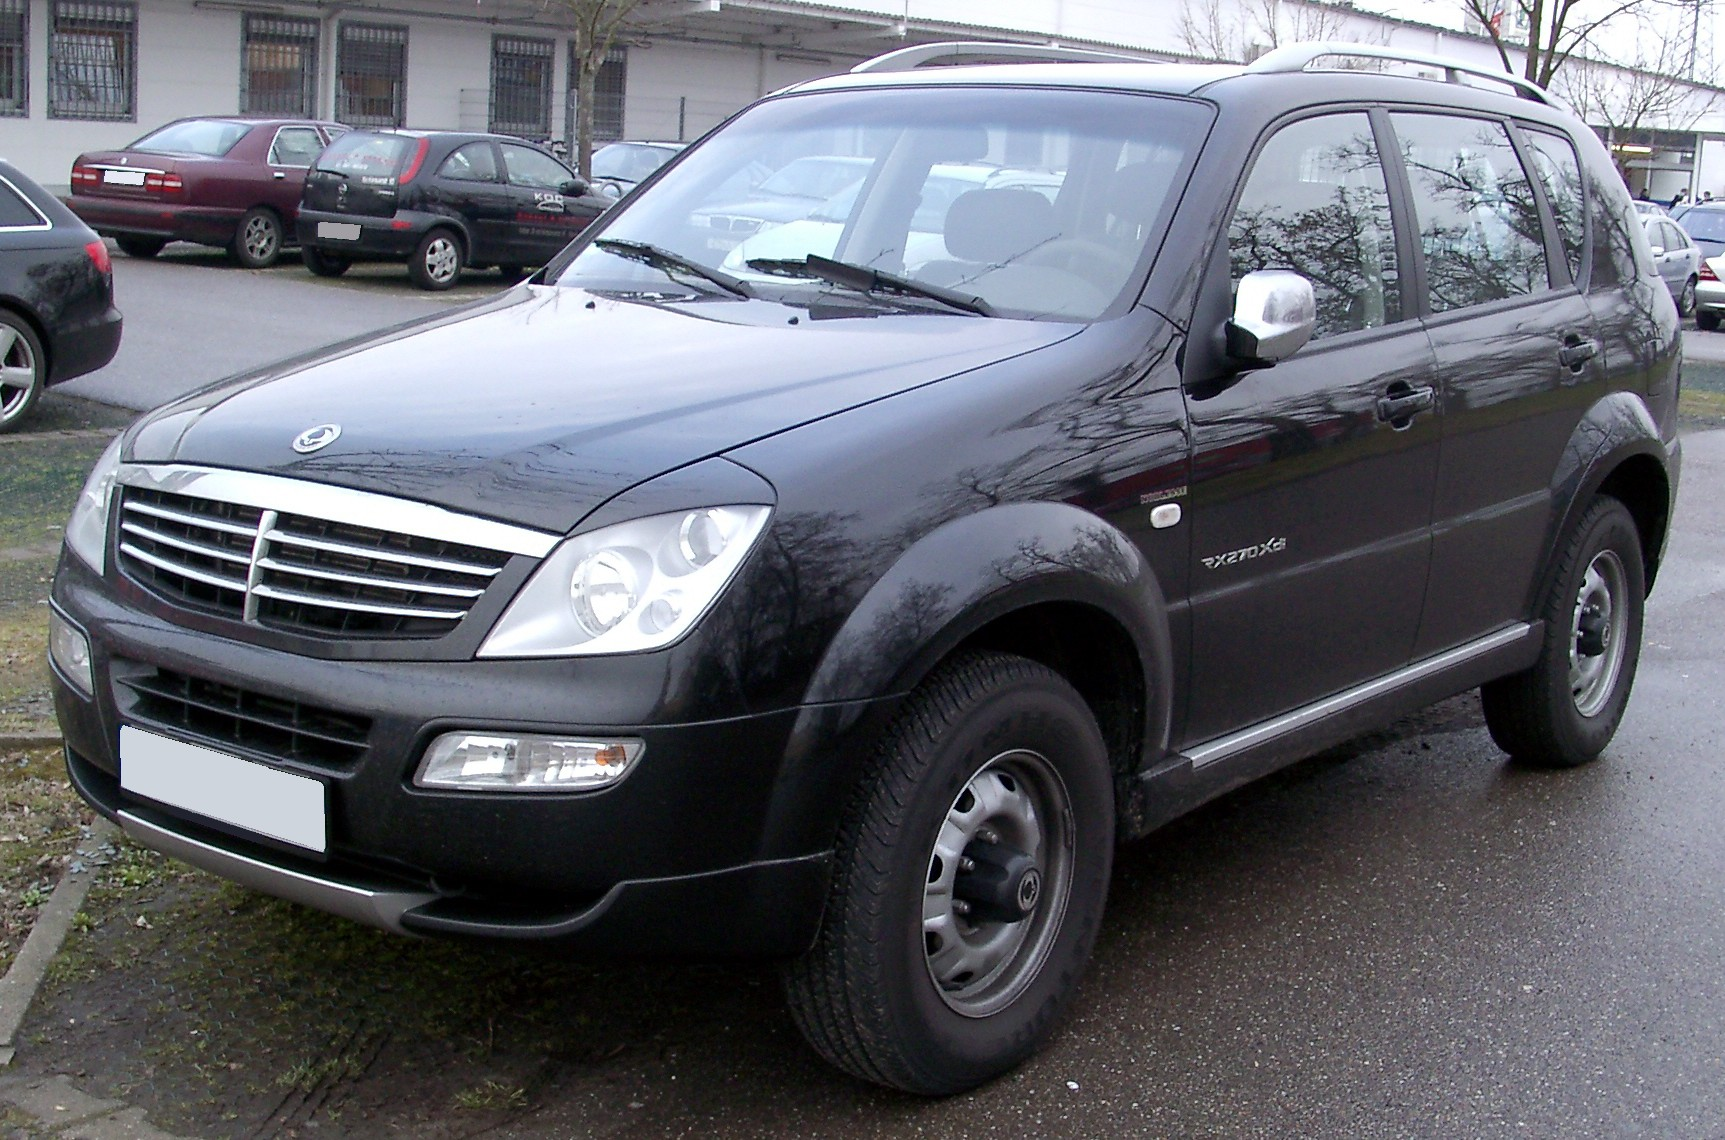 Nissan Altima Wiki >> 2003 Ssangyong Rexton i – pictures, information and specs - Auto-Database.com